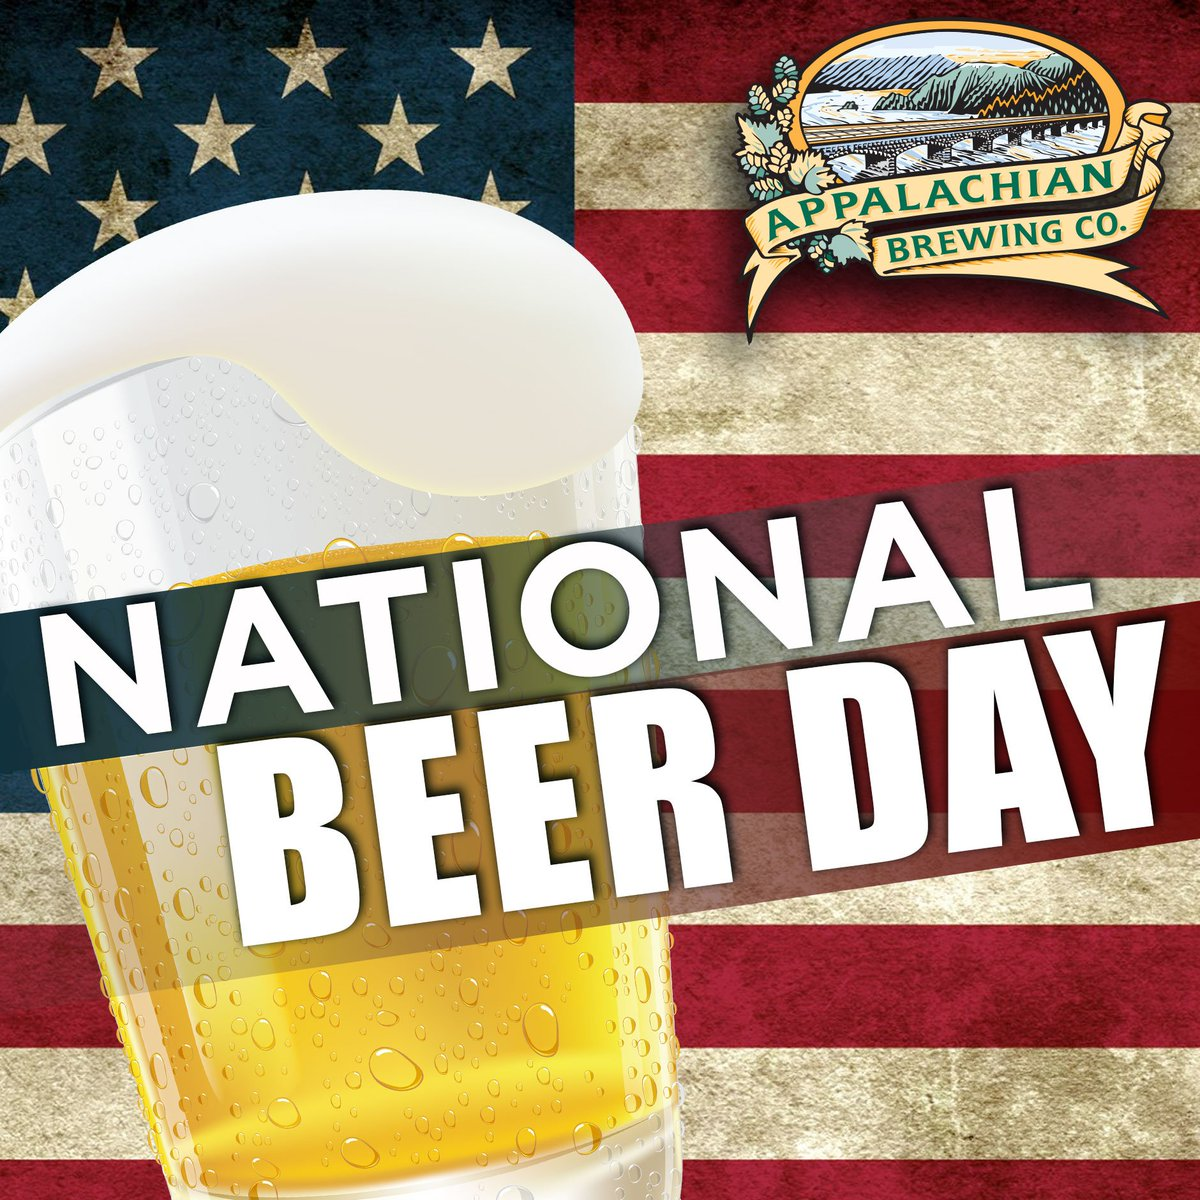 Appalachian Brewing On Twitter Happy National Beer Day Who S Celebrating With Us Nationalbeerday Abcbrew